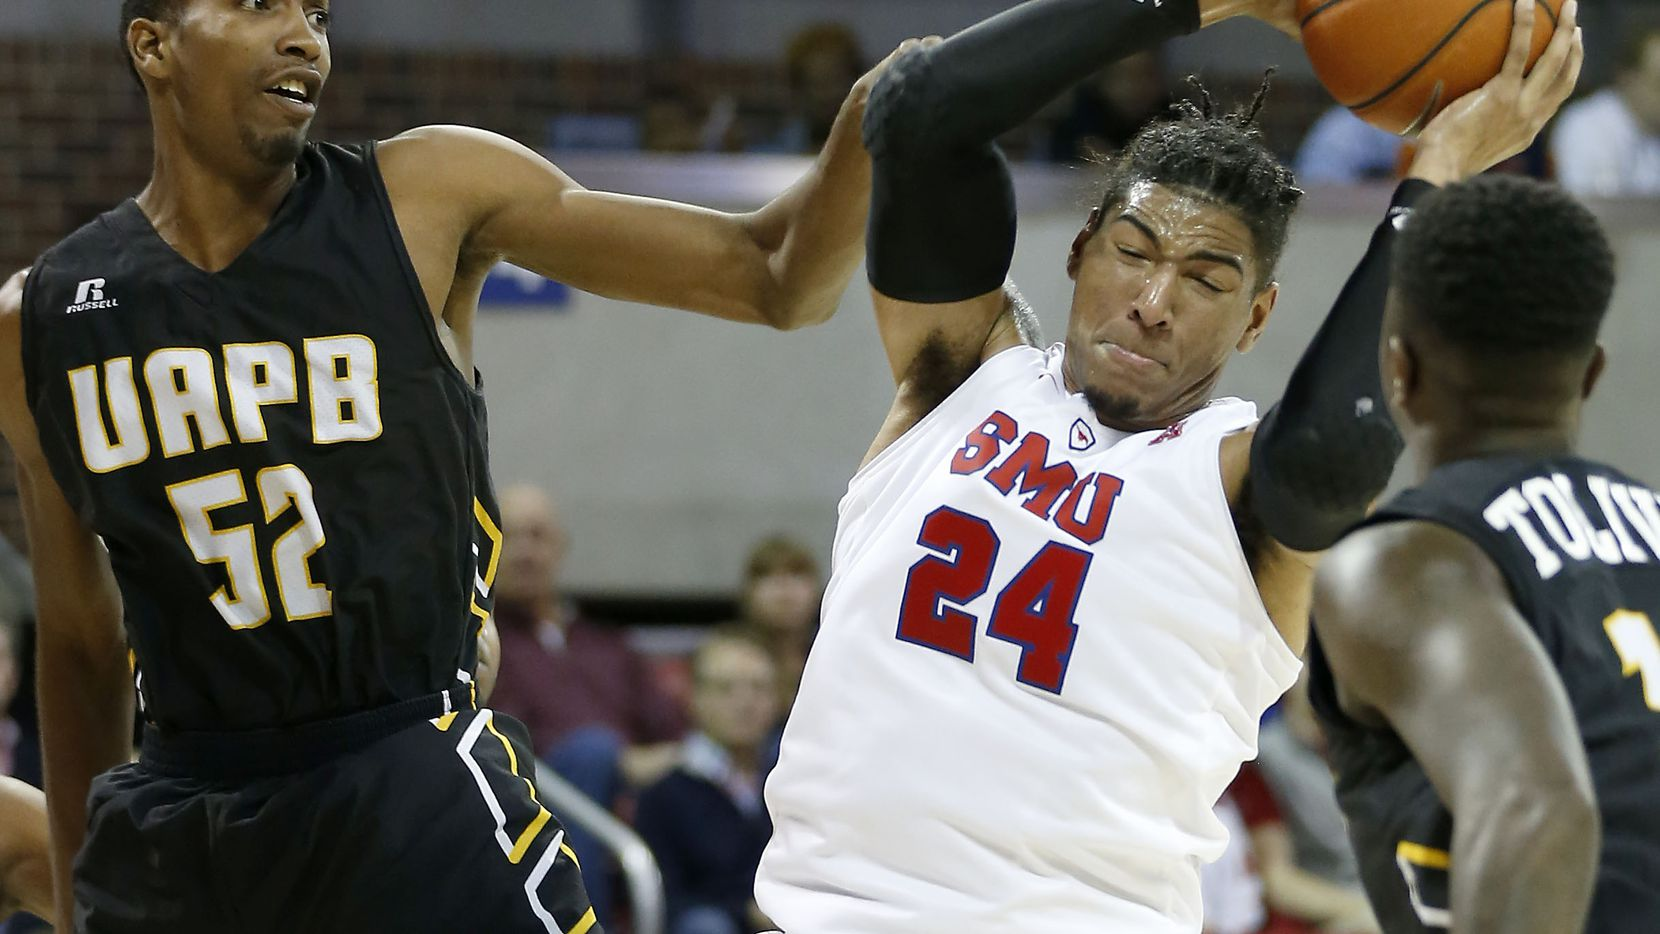 FILE - SMU forward Everett Ray (24) gets a rebound against Arkansas-Pine Bluff center David Tillman (52) during the first half at Moody Coliseum in Dallas, Saturday, Nov. 18, 2017. (Jae S. Lee/The Dallas Morning News)